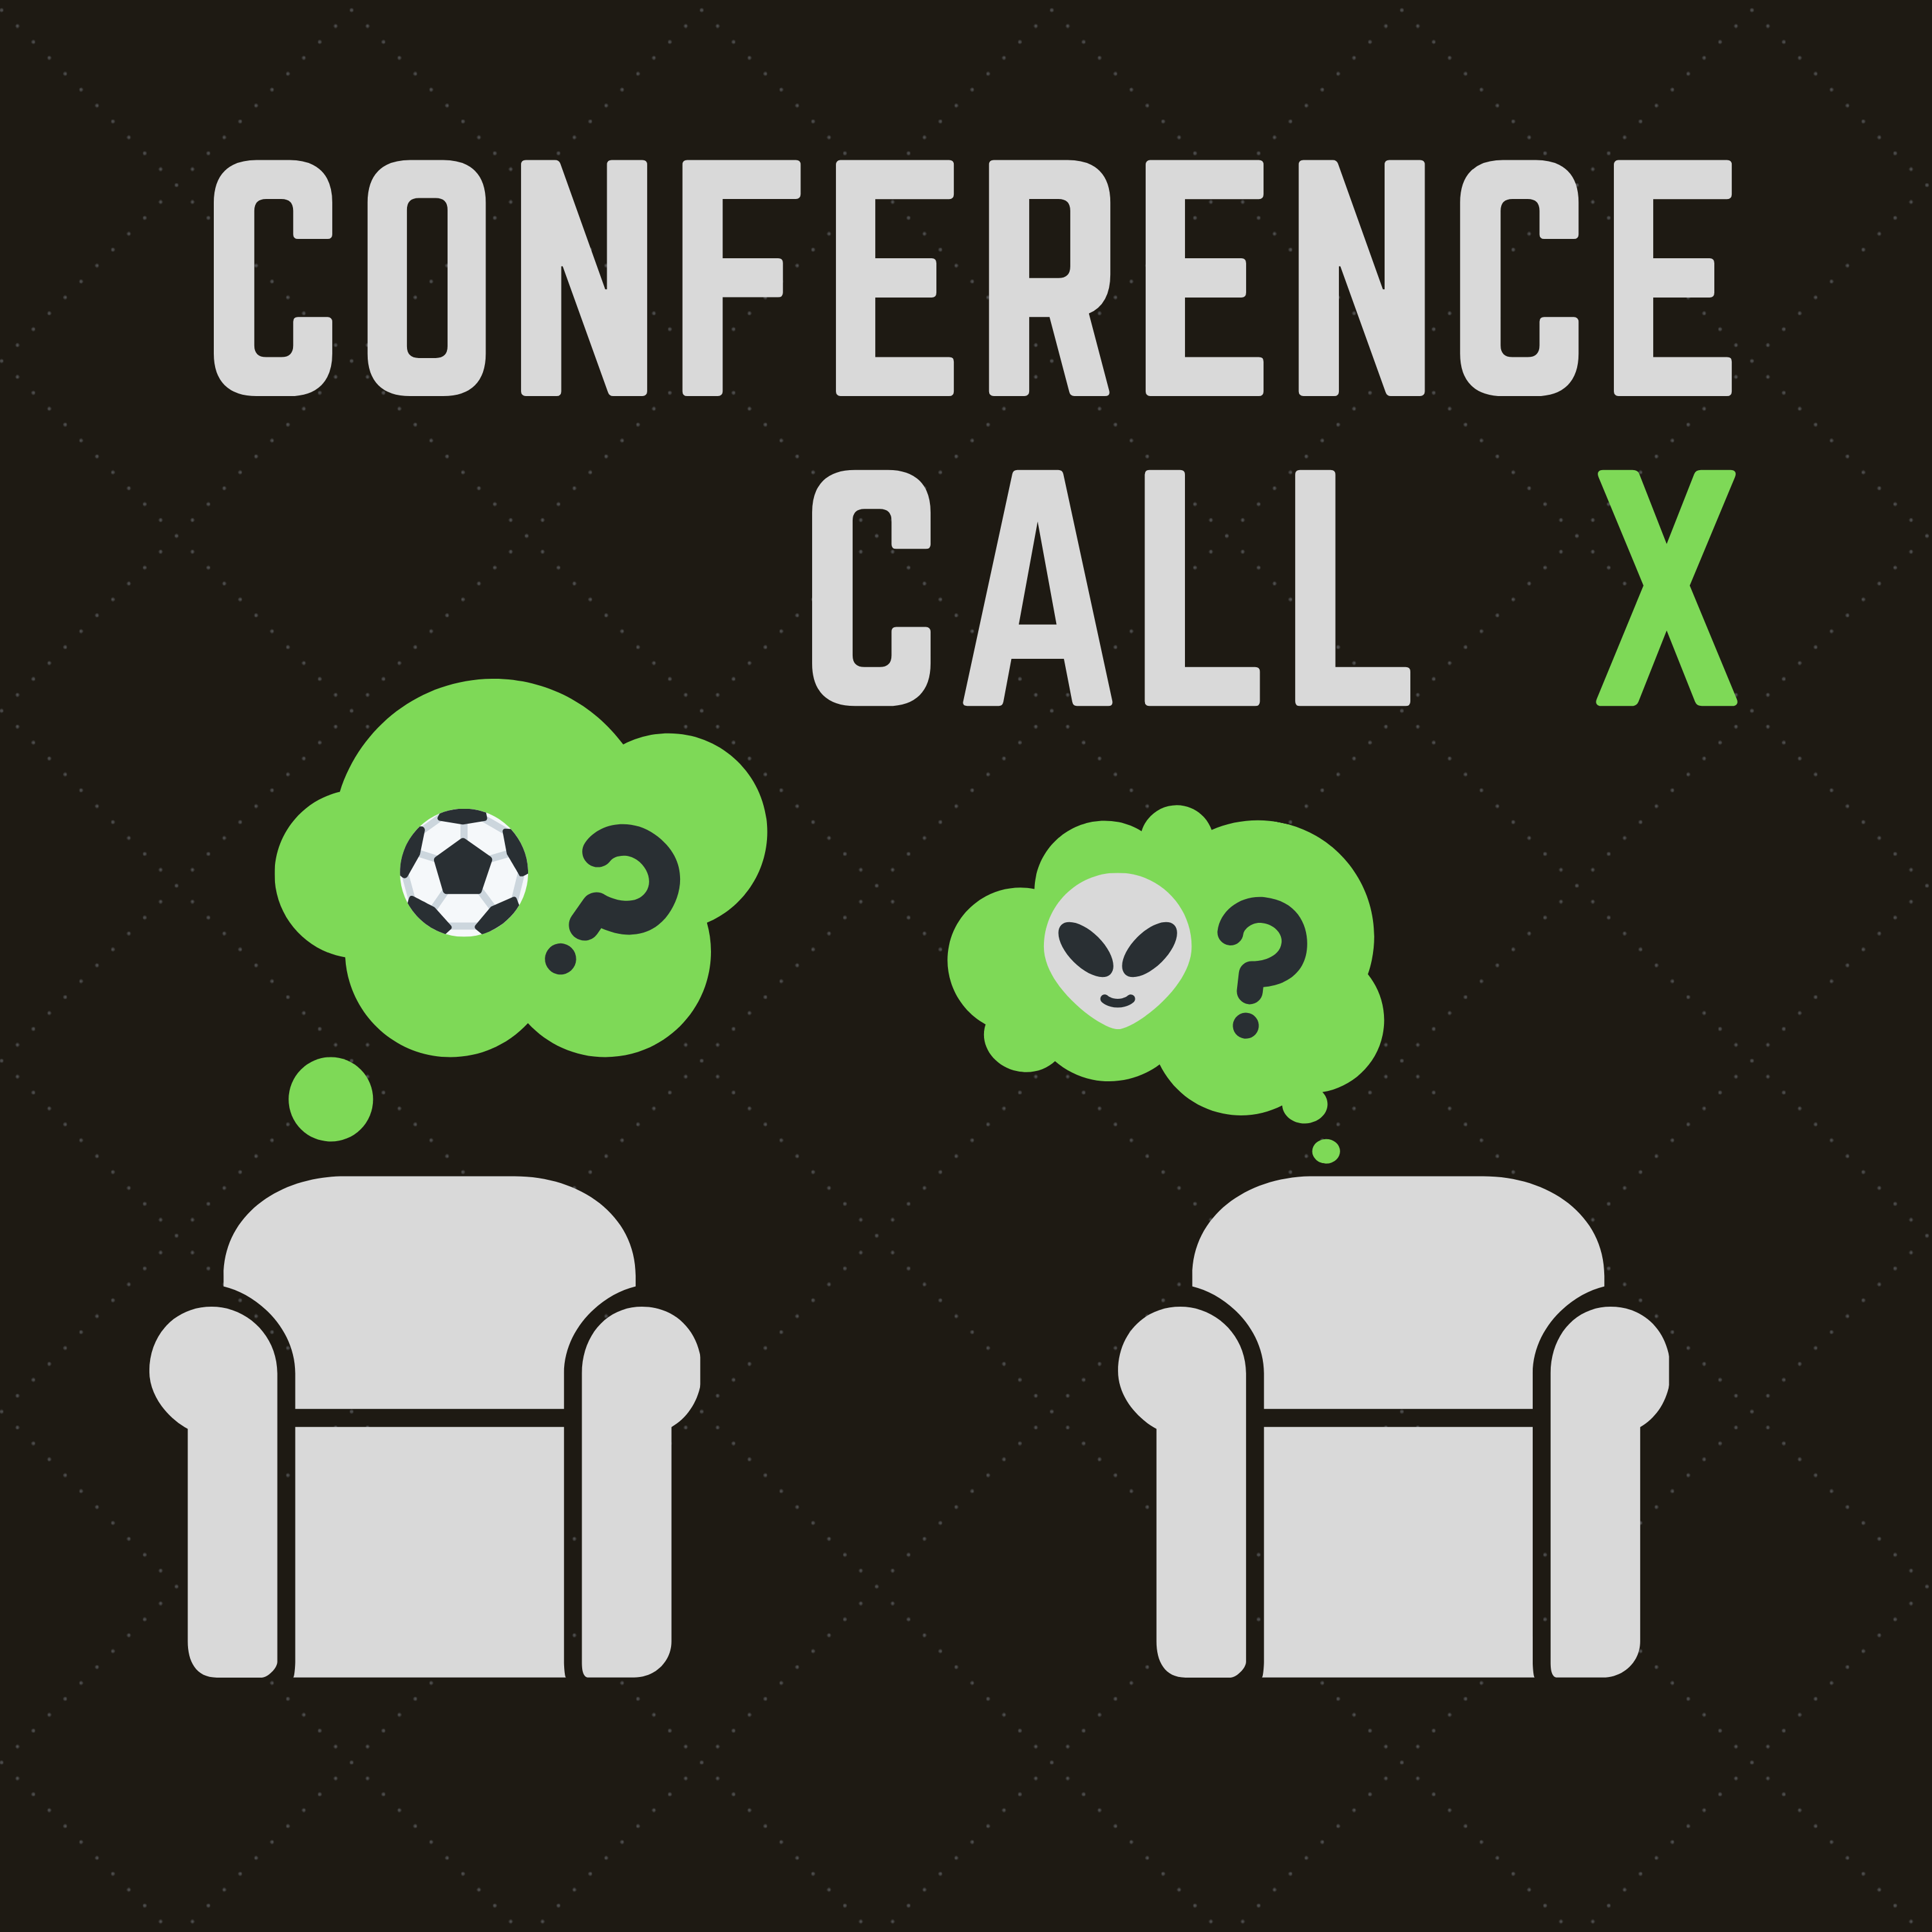 CONFERENCE CALL X